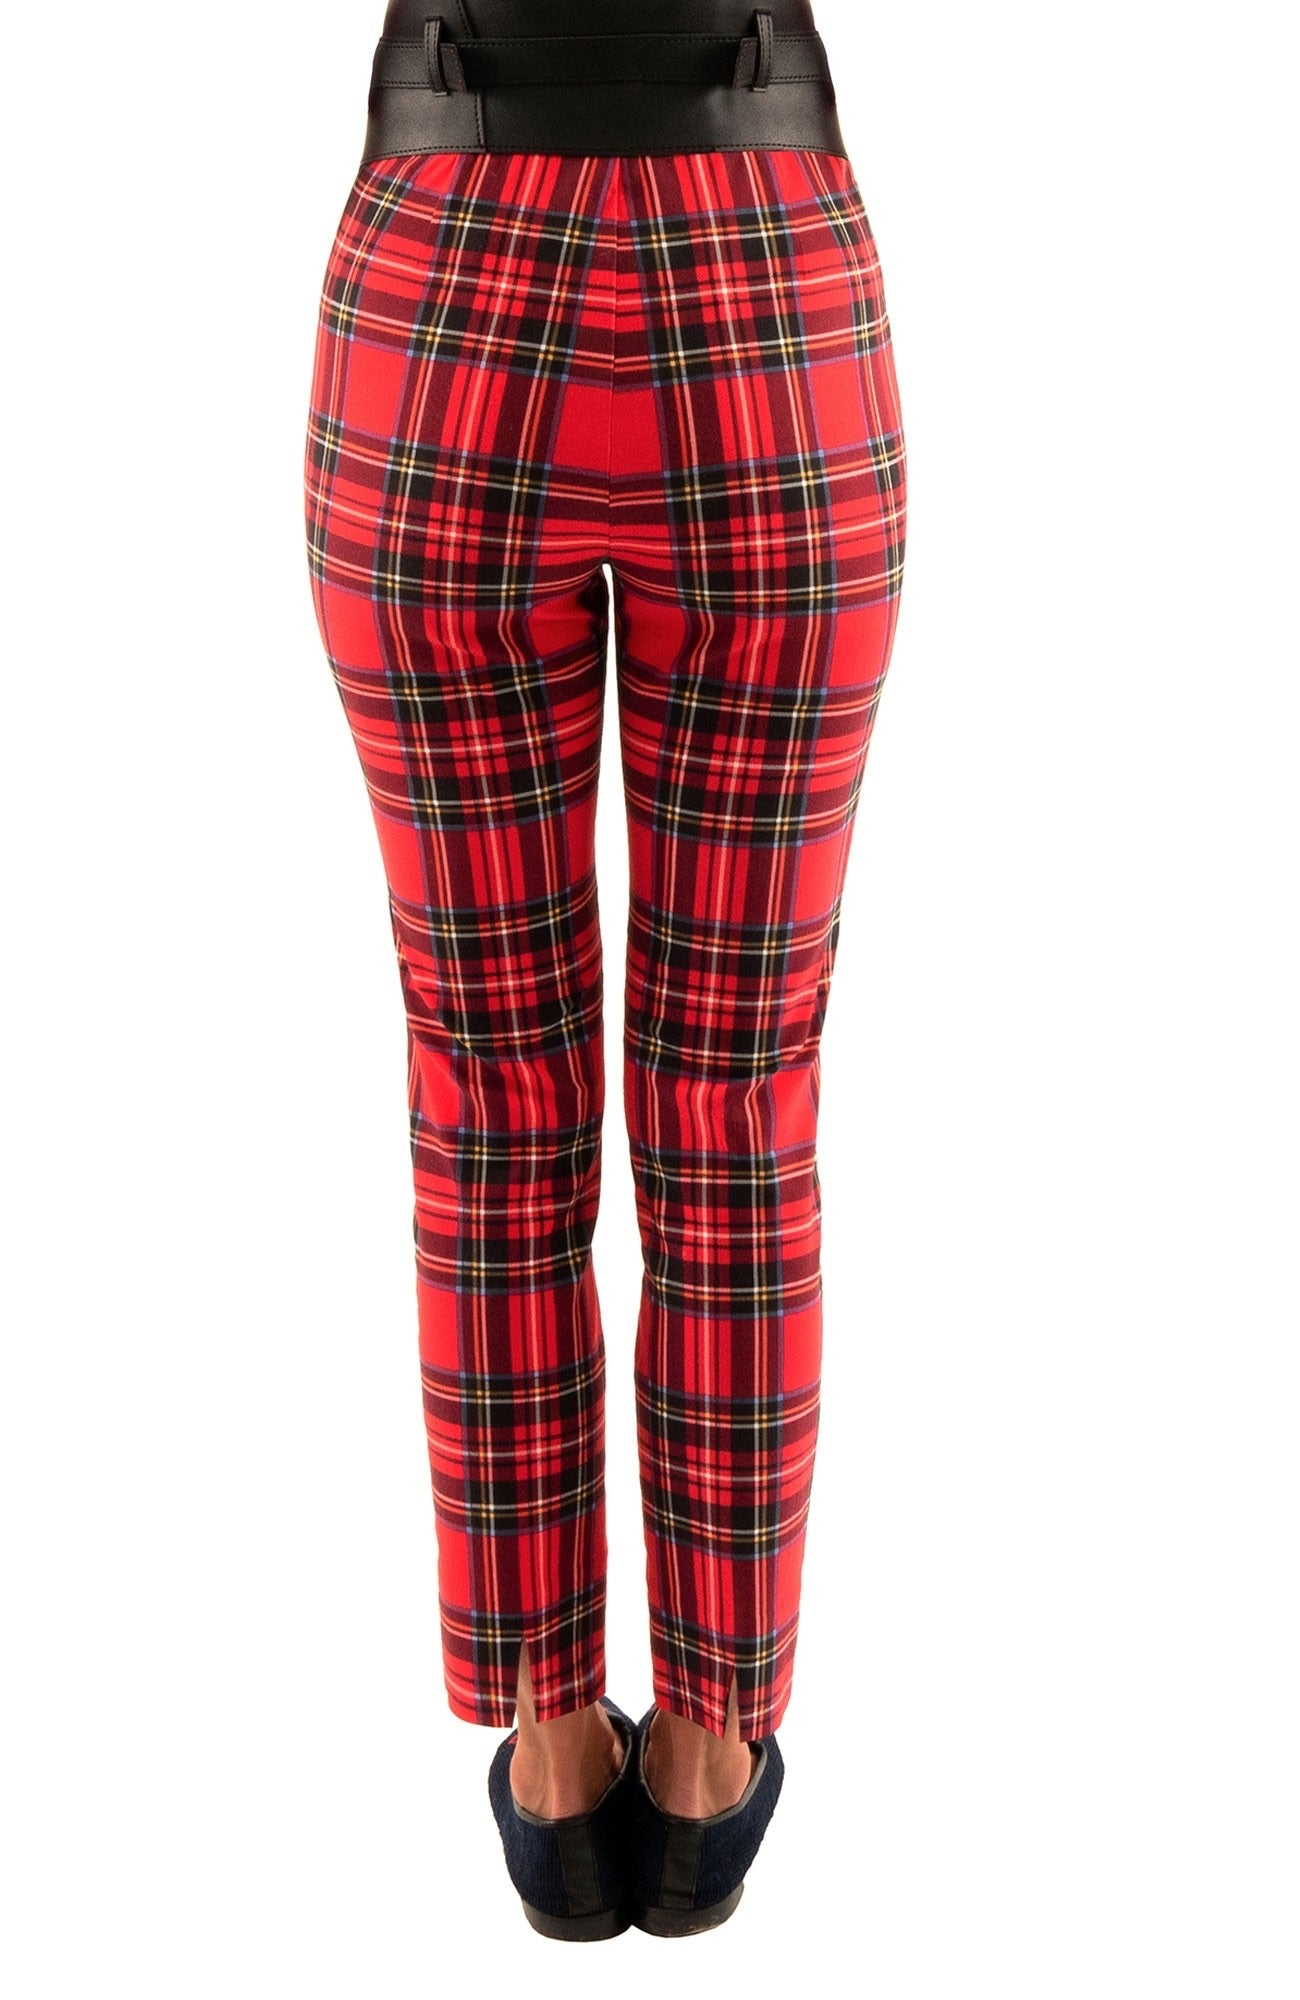 Sale Gretchen Scott Pull On Pant - Duke Of York - Red/Multi